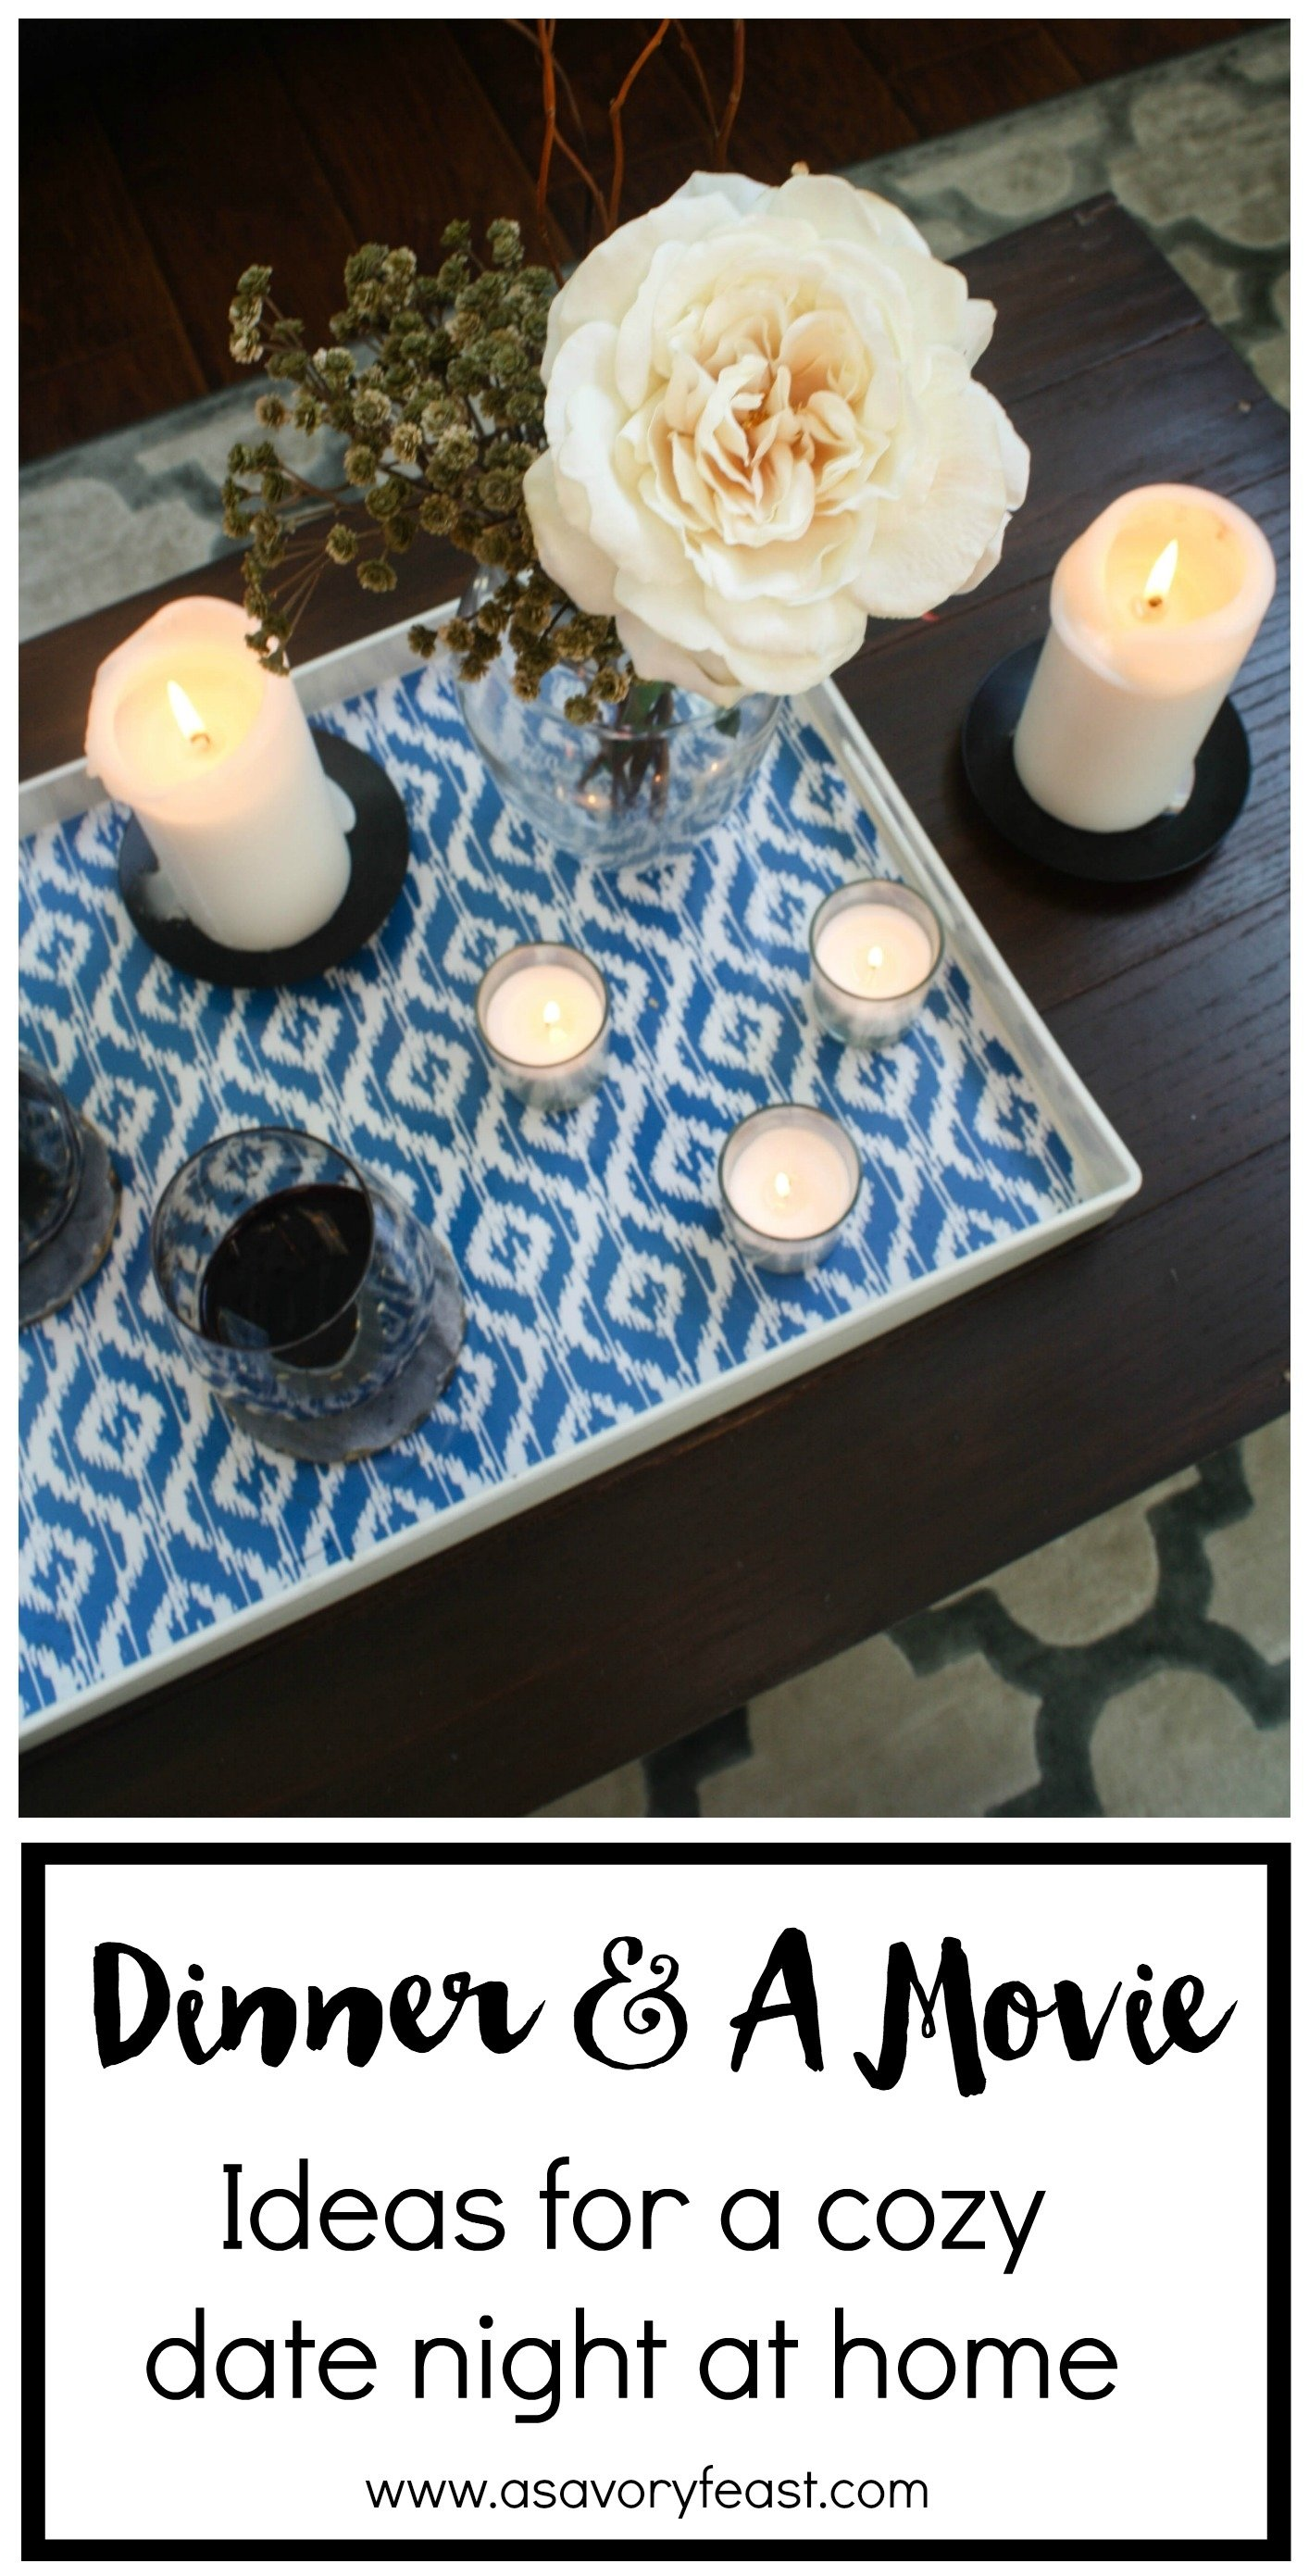 10 Best Date Night At Home Ideas dinner and a movie ideas for a cozy date night at home 2021